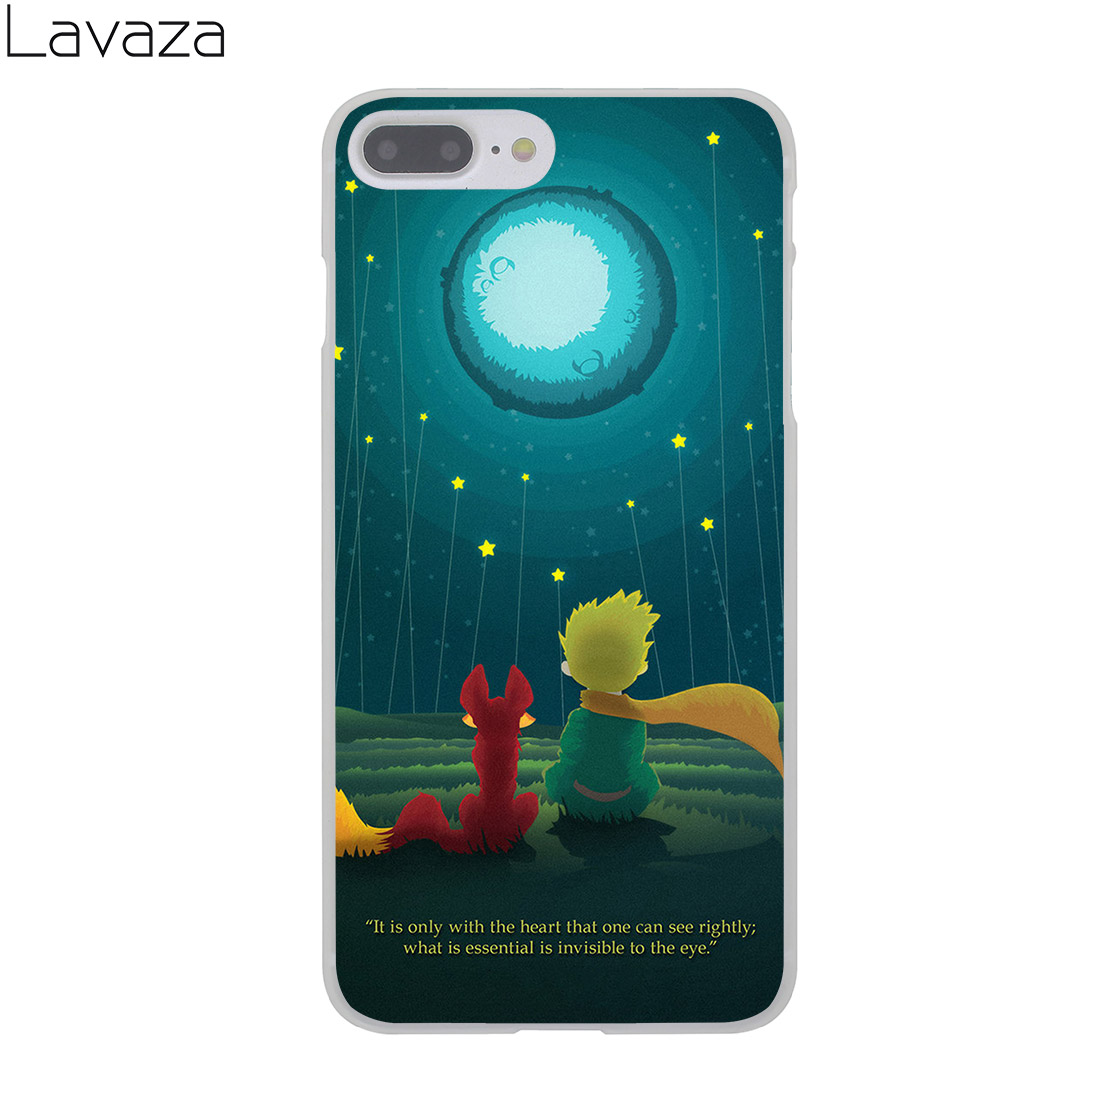 Lavaza Lovely the Little Prince fox On Mint Hard Case for Apple iPhone 8 7 Plus 6 6S Plus 5 5S SE 5C 4 4S Cover for iPhone X 10